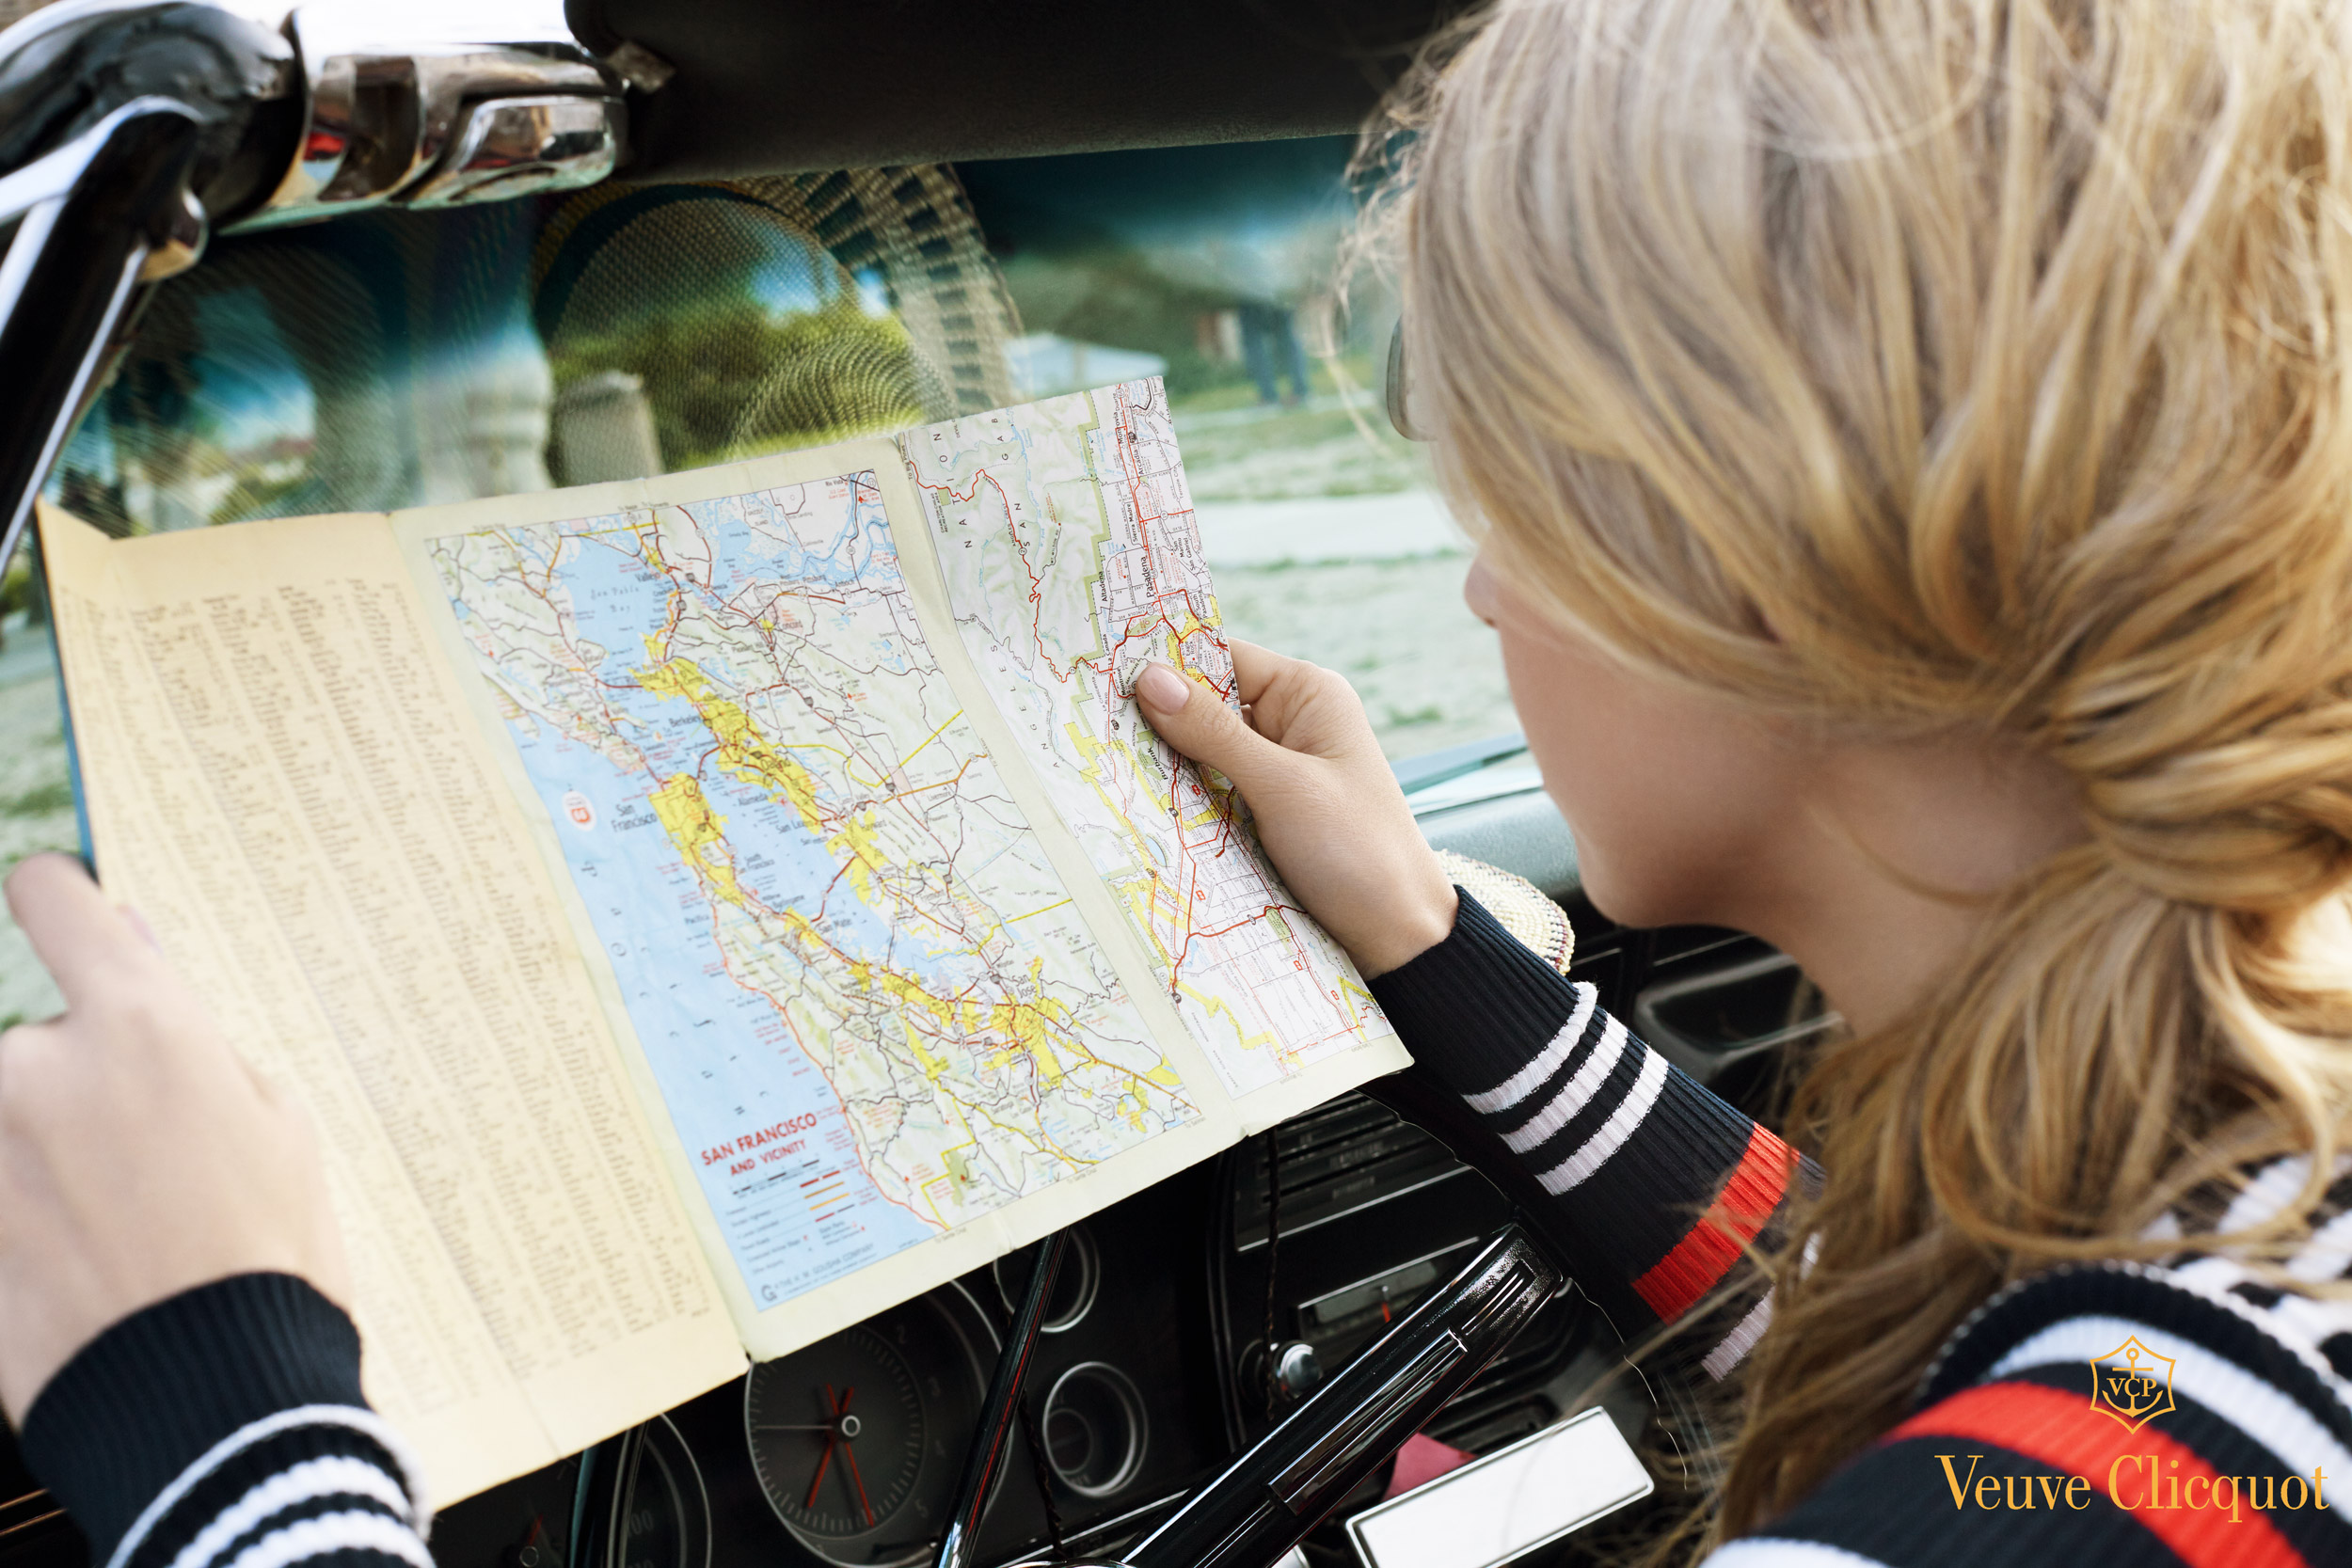 Girl looking at a map in a car - Kim Genevieve Los Angeles Lifestyle Photographer